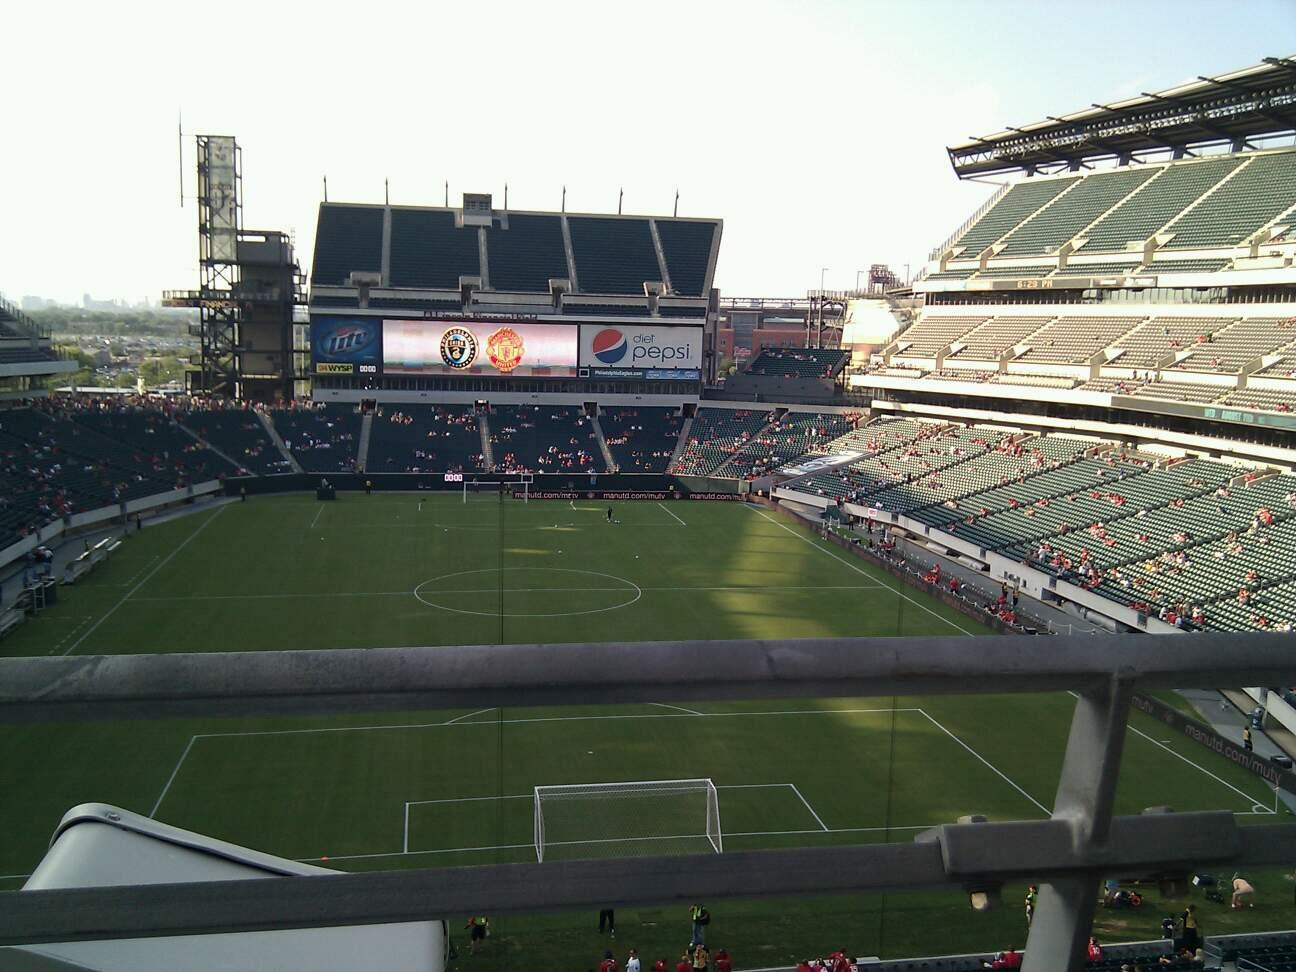 Lincoln Financial Field Section M10 Row 19 Seat 21